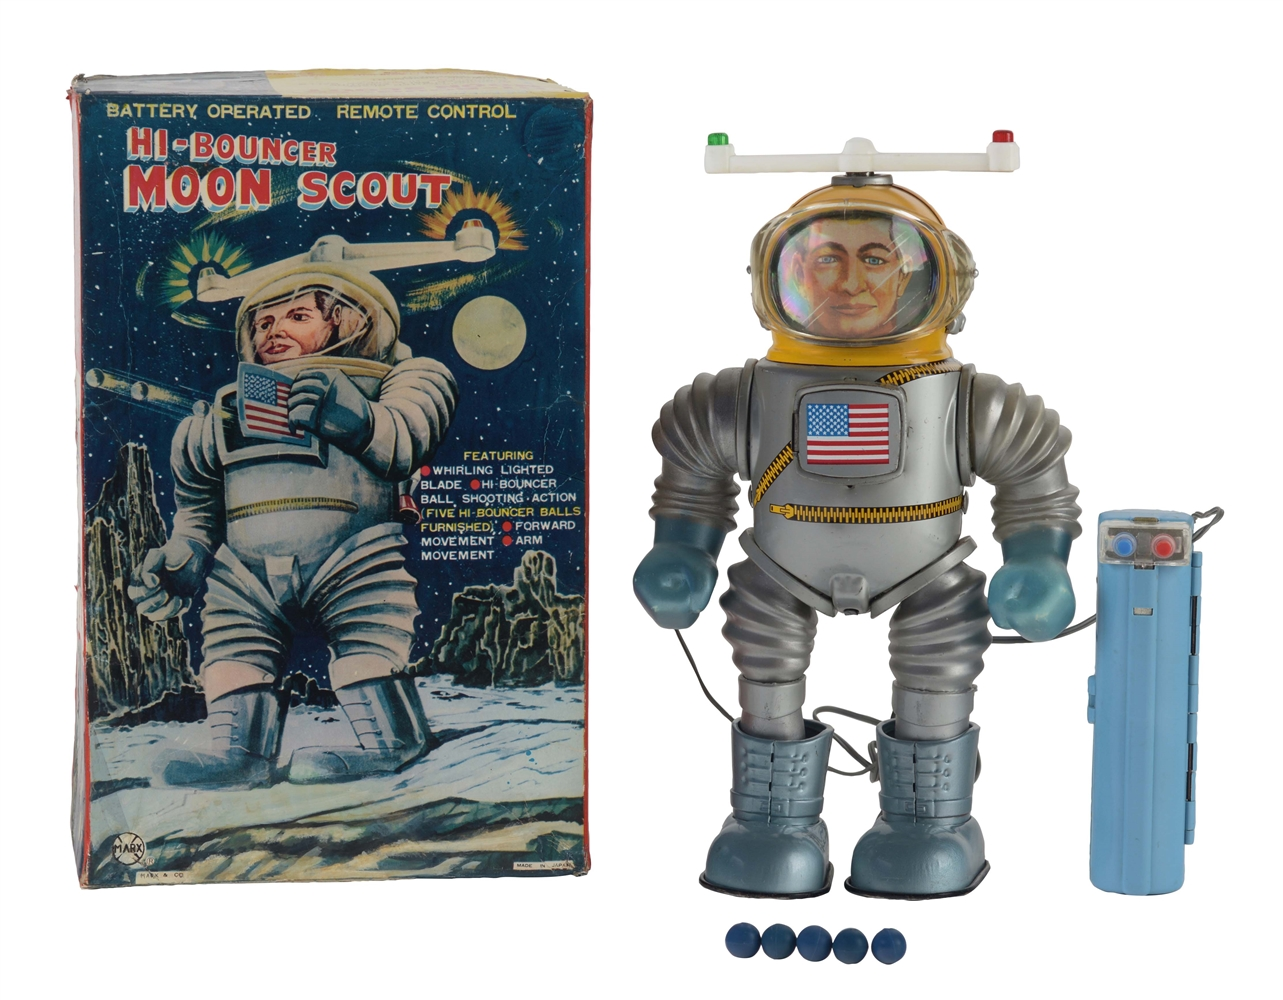 Tin Litho Battery Operated Remote Control High-Bouncer Moon Scout.